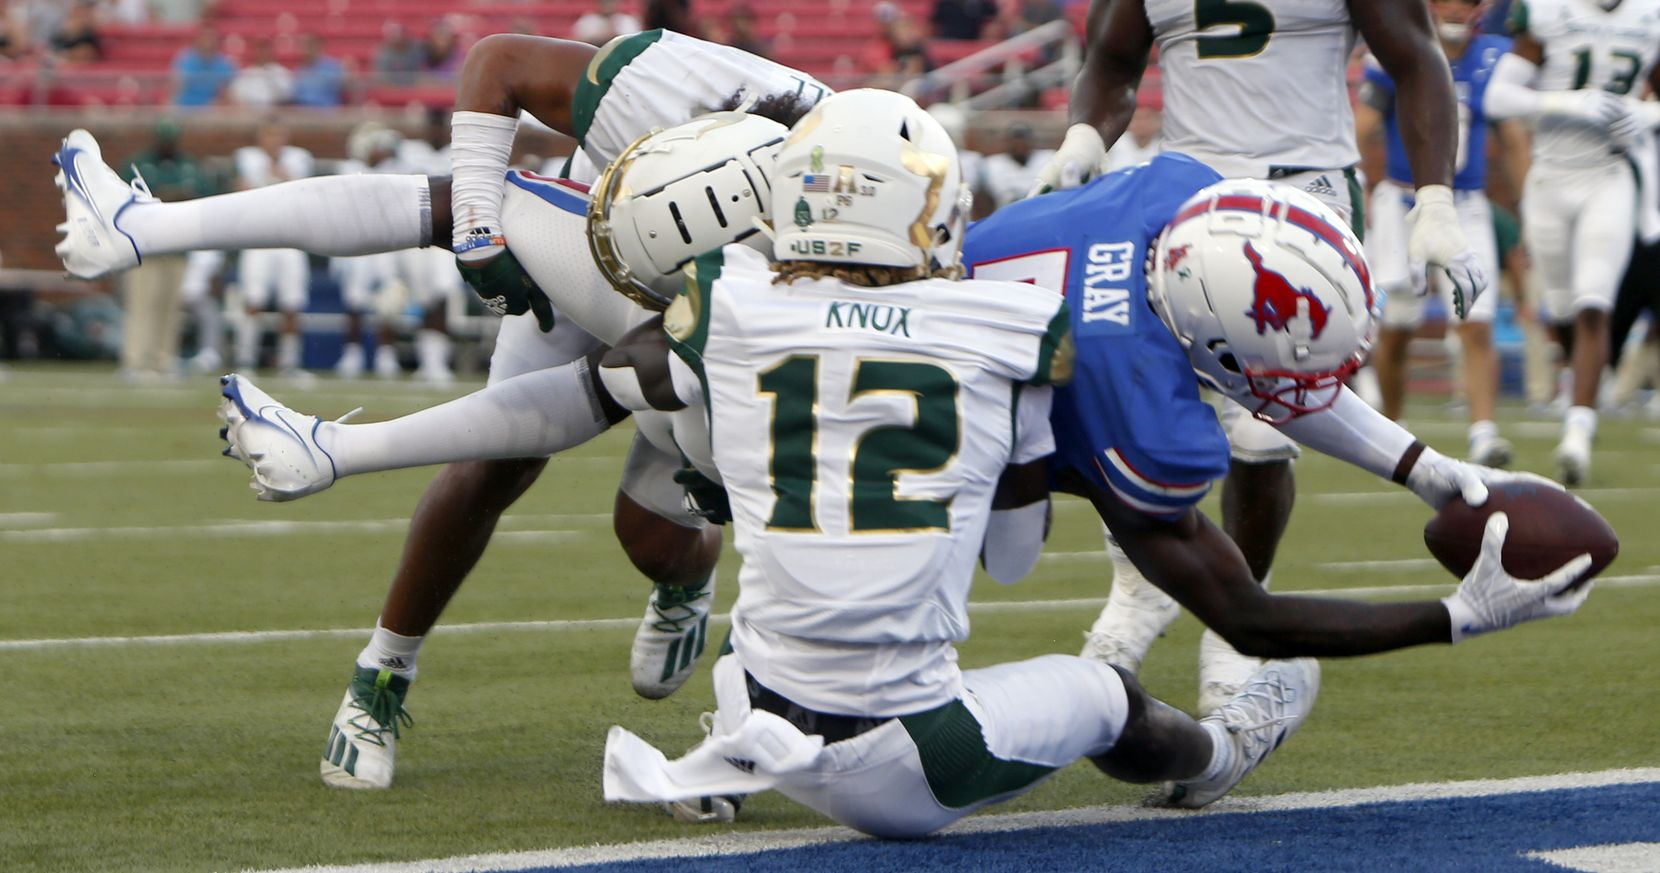 SMU receiver Danny Gray (5) dives into the end zone despite the defensive efforts of South Florida cornerback Ben Knox (12) and safety Matthew Hill (1) following a 4th quarter reception. SMU defeated South Florida 41-17. The two teams played their NCAA football game at SMU's Ford Stadium in Dallas on October 2, 2021. (Steve Hamm/ Special Contributor)